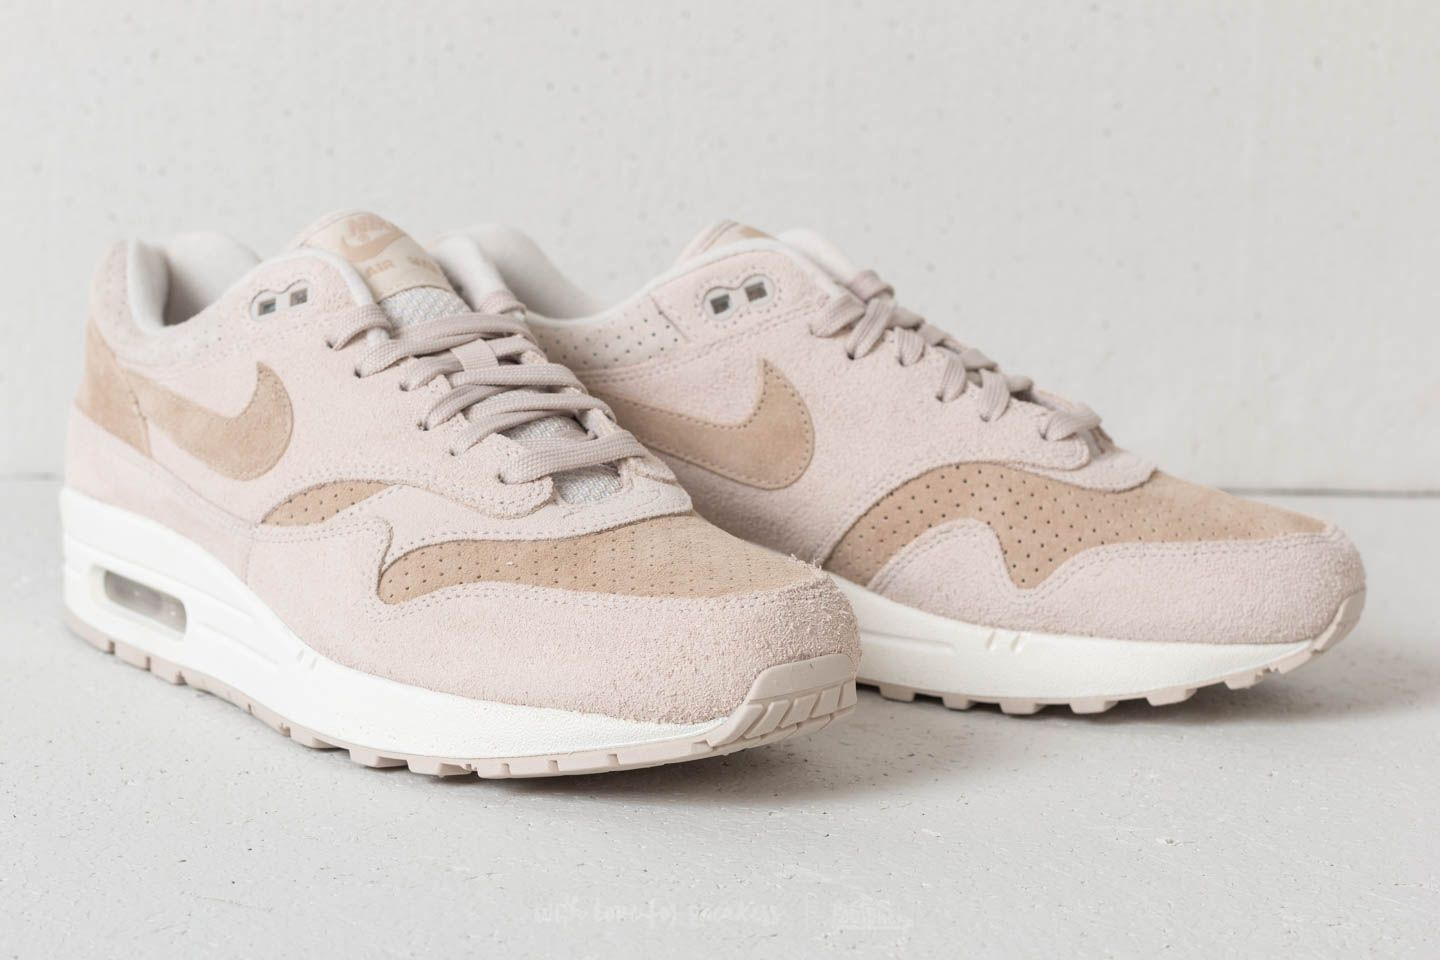 new product 3d442 0e4ca Nike Air Max 1 Desert Sand Baskets Femme Nike Air Max 1 Premium Desert Sand   Sand-Sail Nike Air Max 1 Premium - Desert Sand Sand-Sail